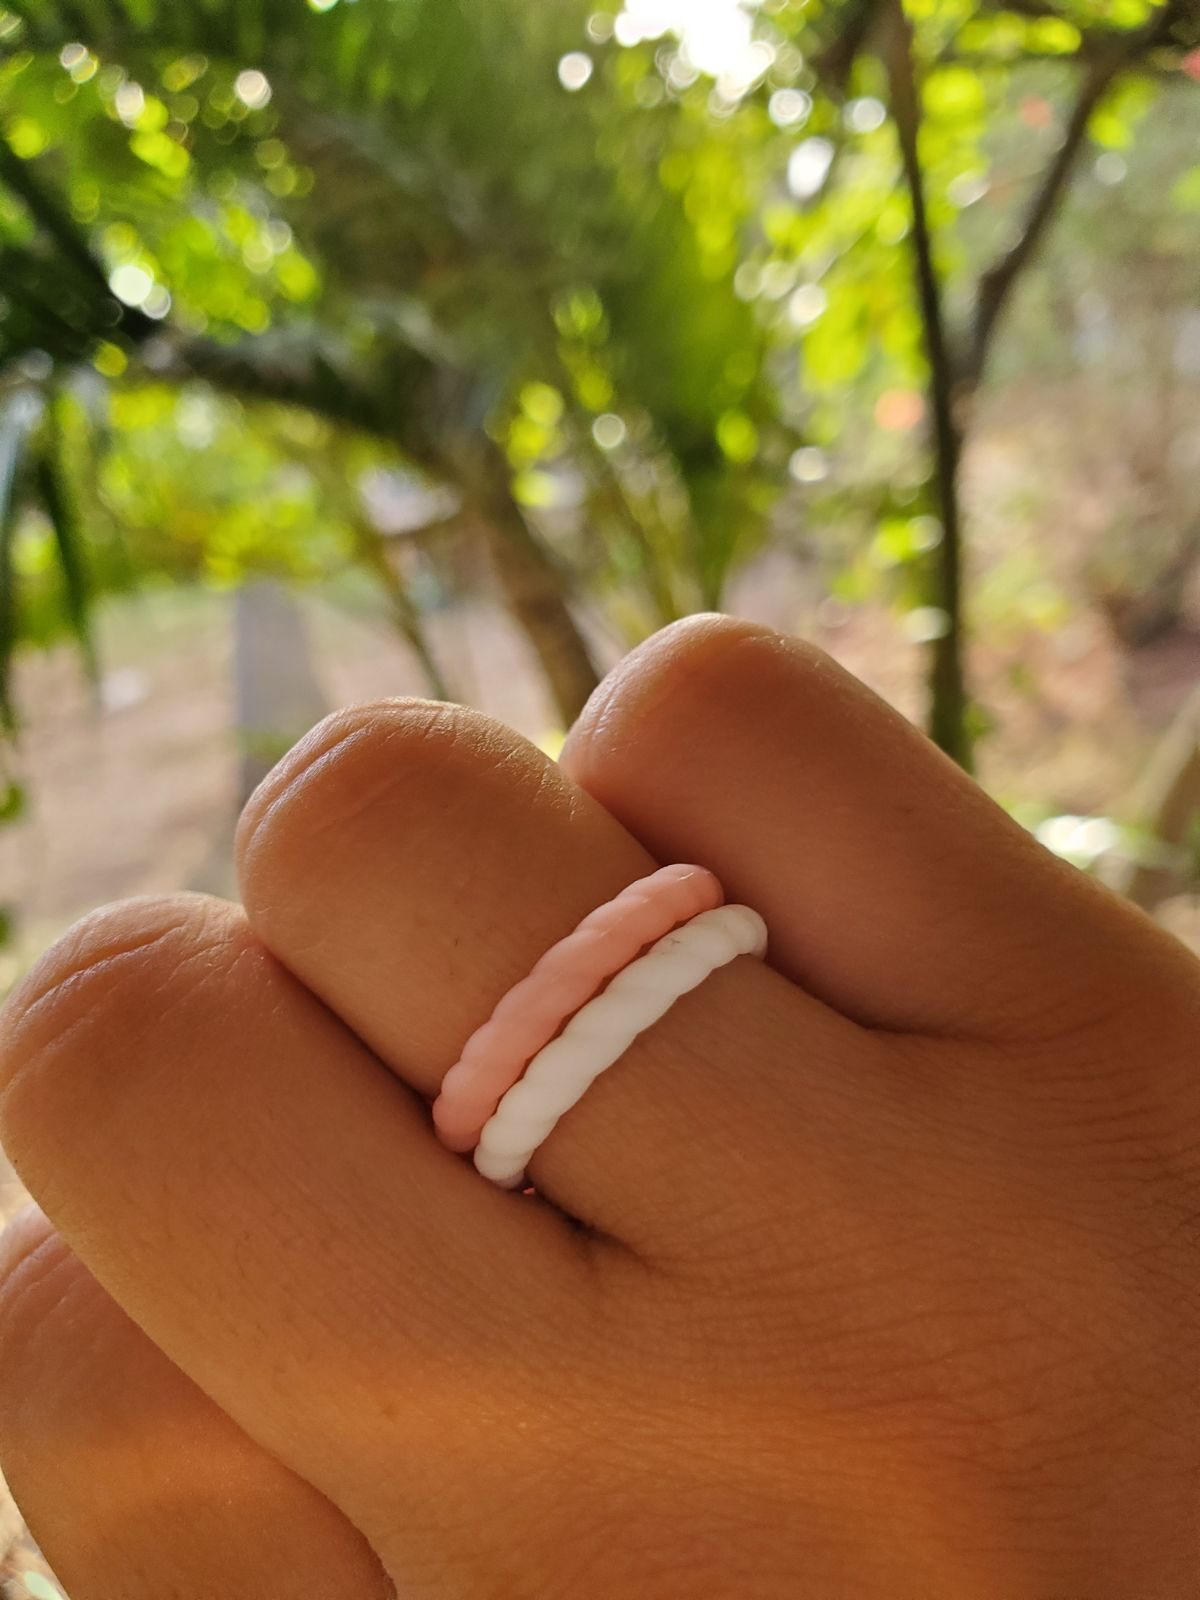 Size 6 7 5 Slightly Stretchy Never Worn Other Than To Display Braided Silicone Wedding Bands White Pi Silicone Wedding Band Wedding Bands Engagement Bands